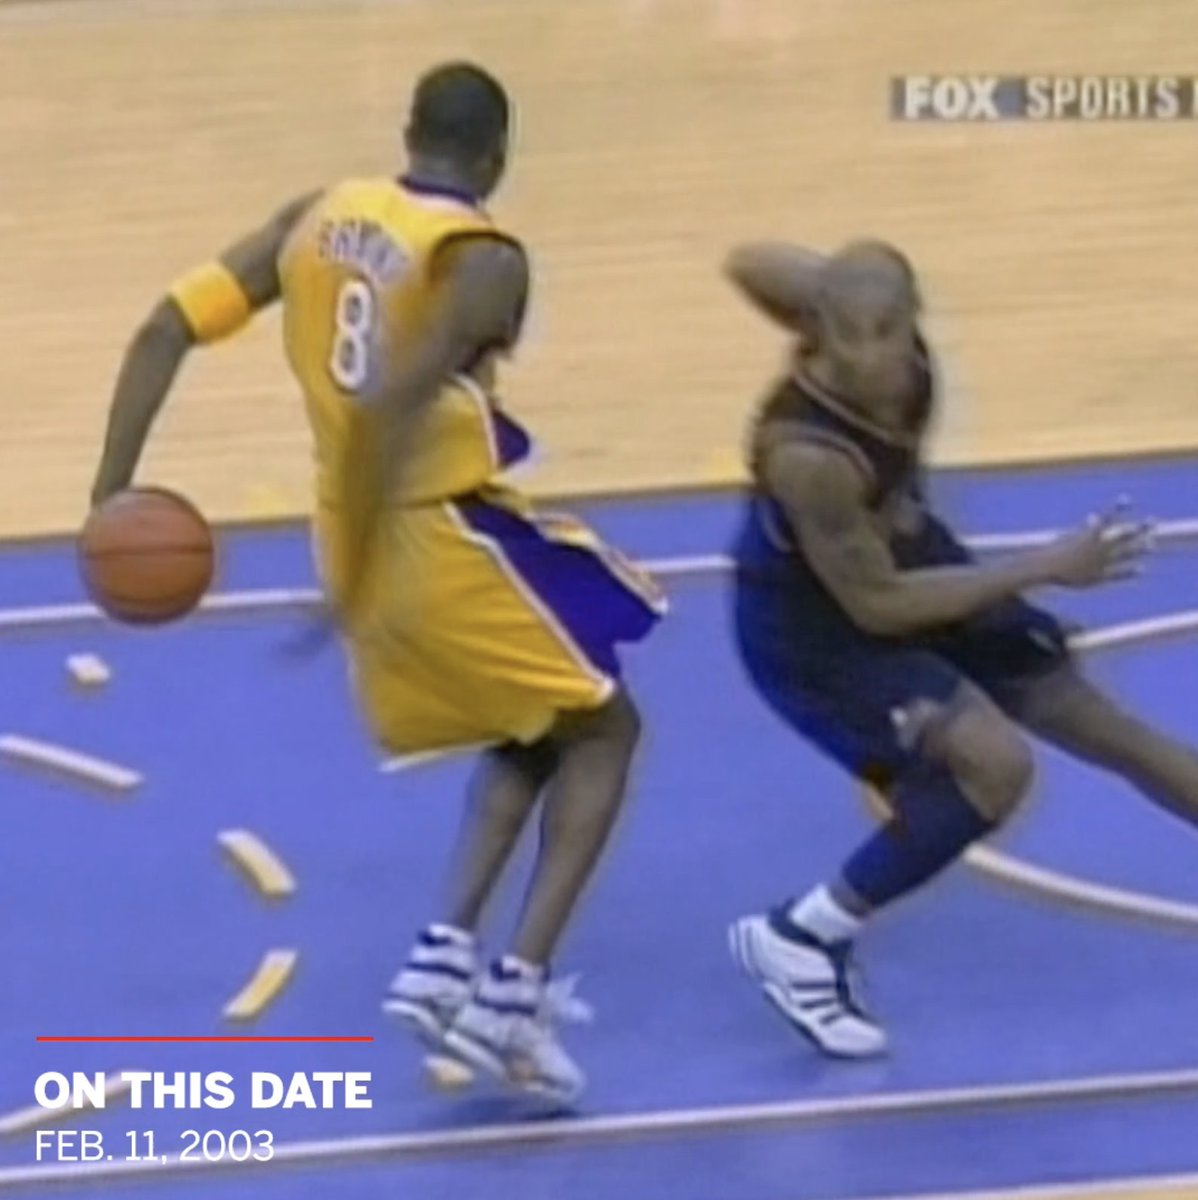 Kobe hit the behind-the-back reverse dunk 17 years ago today 💥 Legendary 🐍